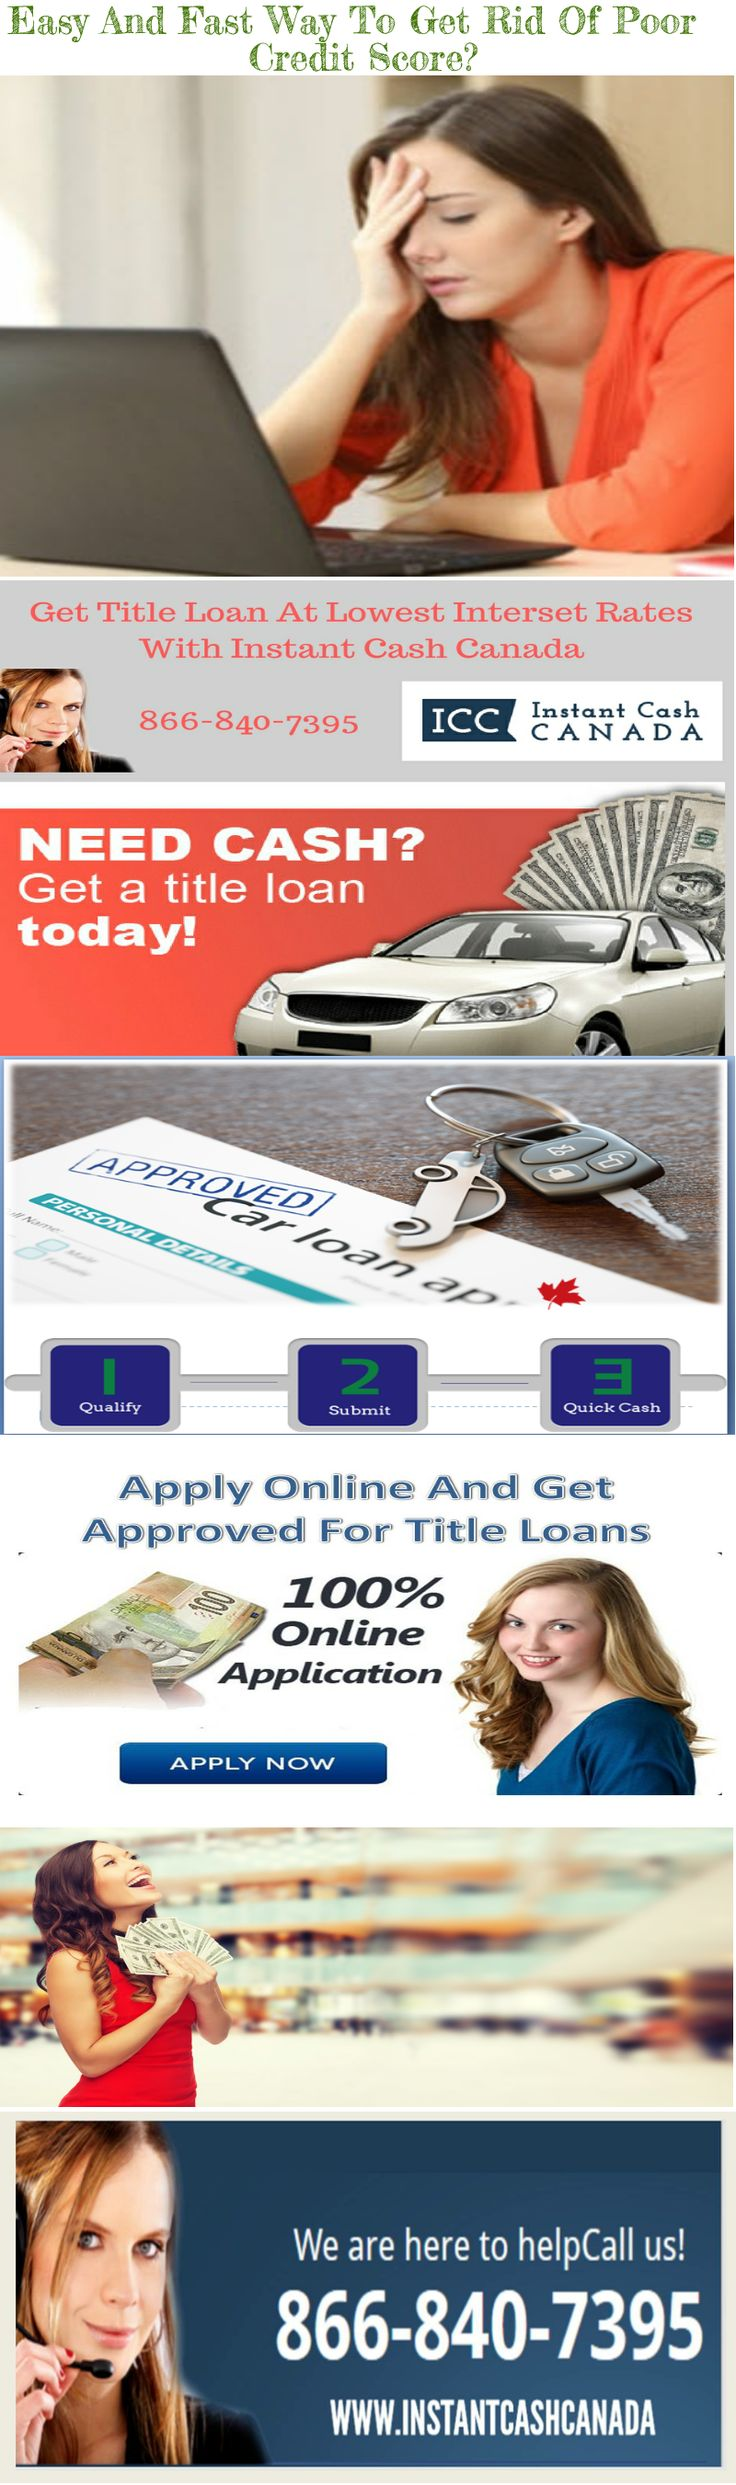 Need quick and an easy approval on car title loans in London? Just Call Instant Cash Canada at 1-866-840-7395 and get approved easily. Our Loan process is very easy and fast and we are the best and perfect option if you are applying for car title loans. For more information visit https://badcreditcarloansalberta.wordpress.com/2017/06/02/apply-today-get-cash-today-car-title-loans-london/